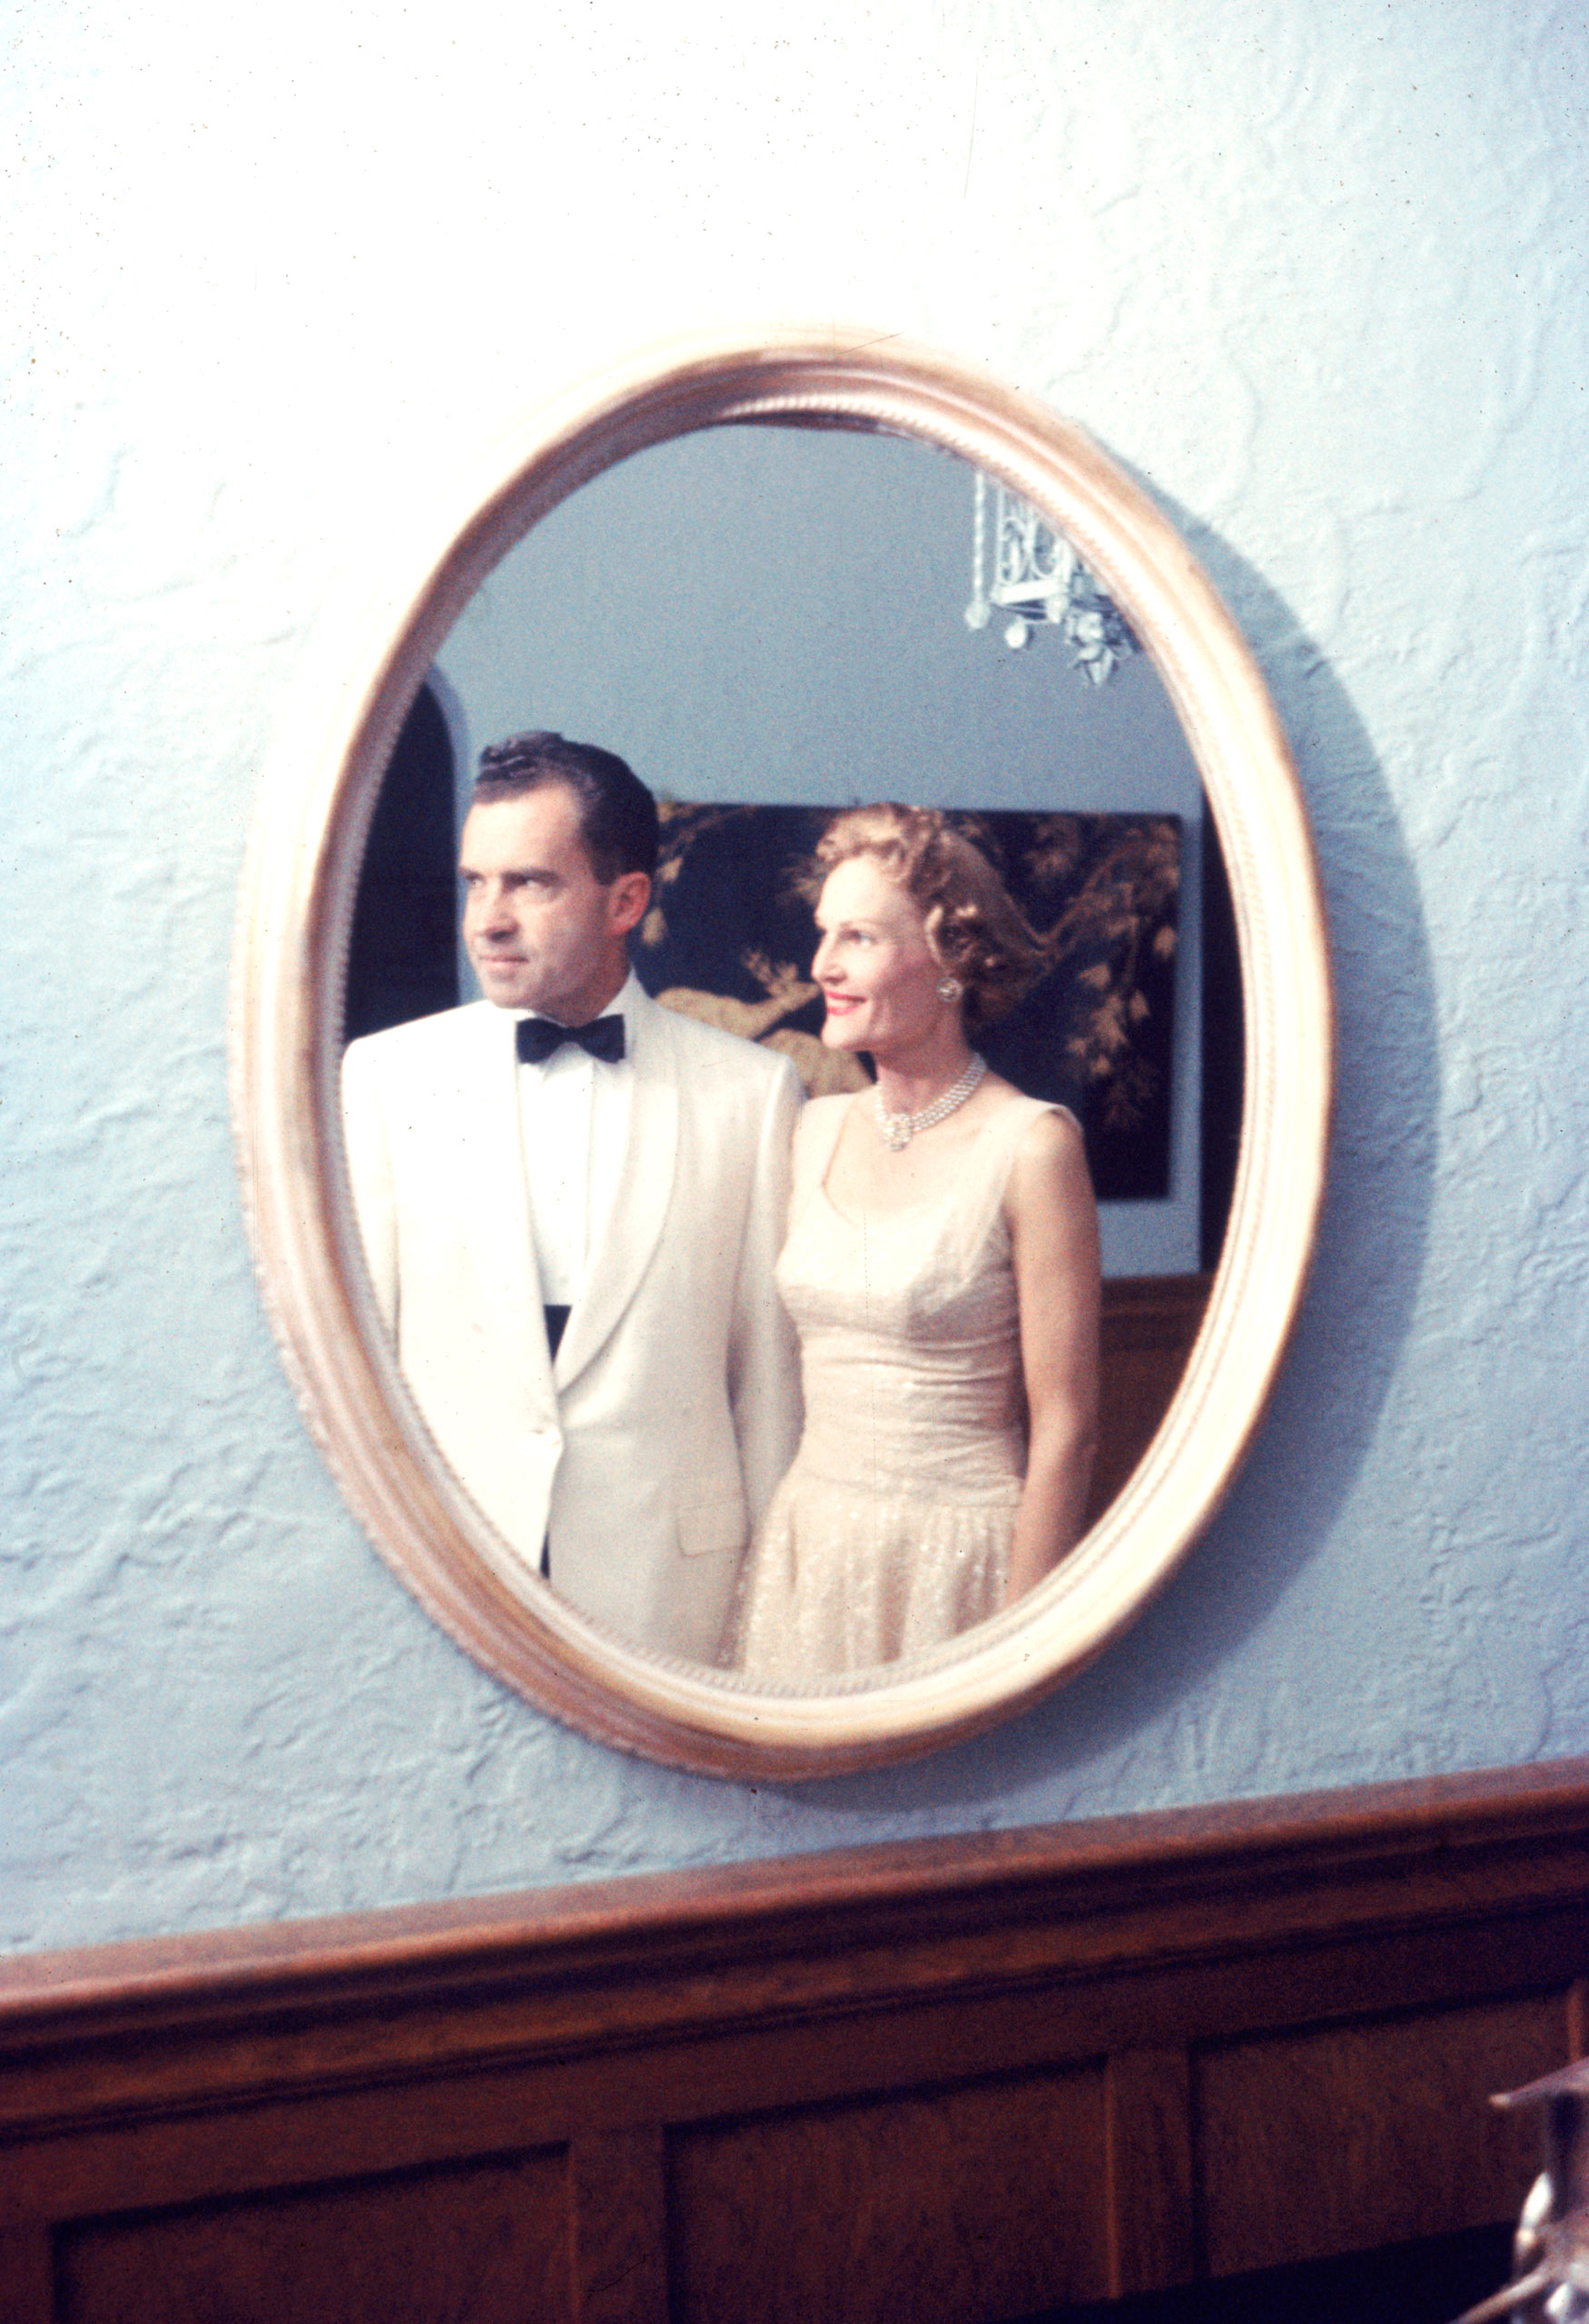 Vice President Richard Nixon and his wife Pat in formal dress reflected in oval mirror, 1958.